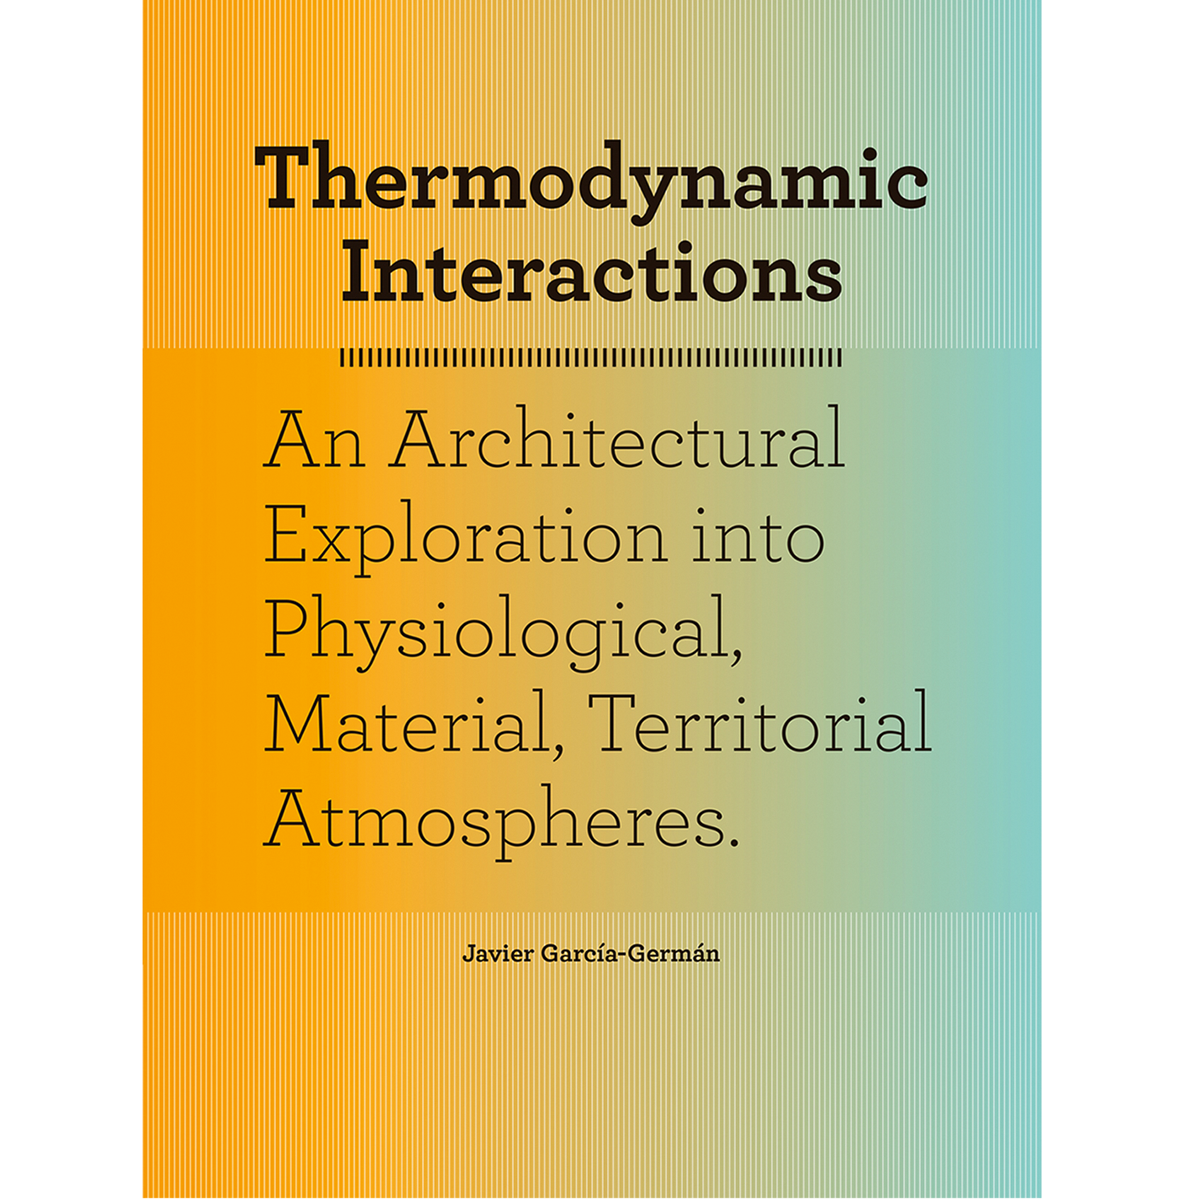 Thermodynamic Interactions